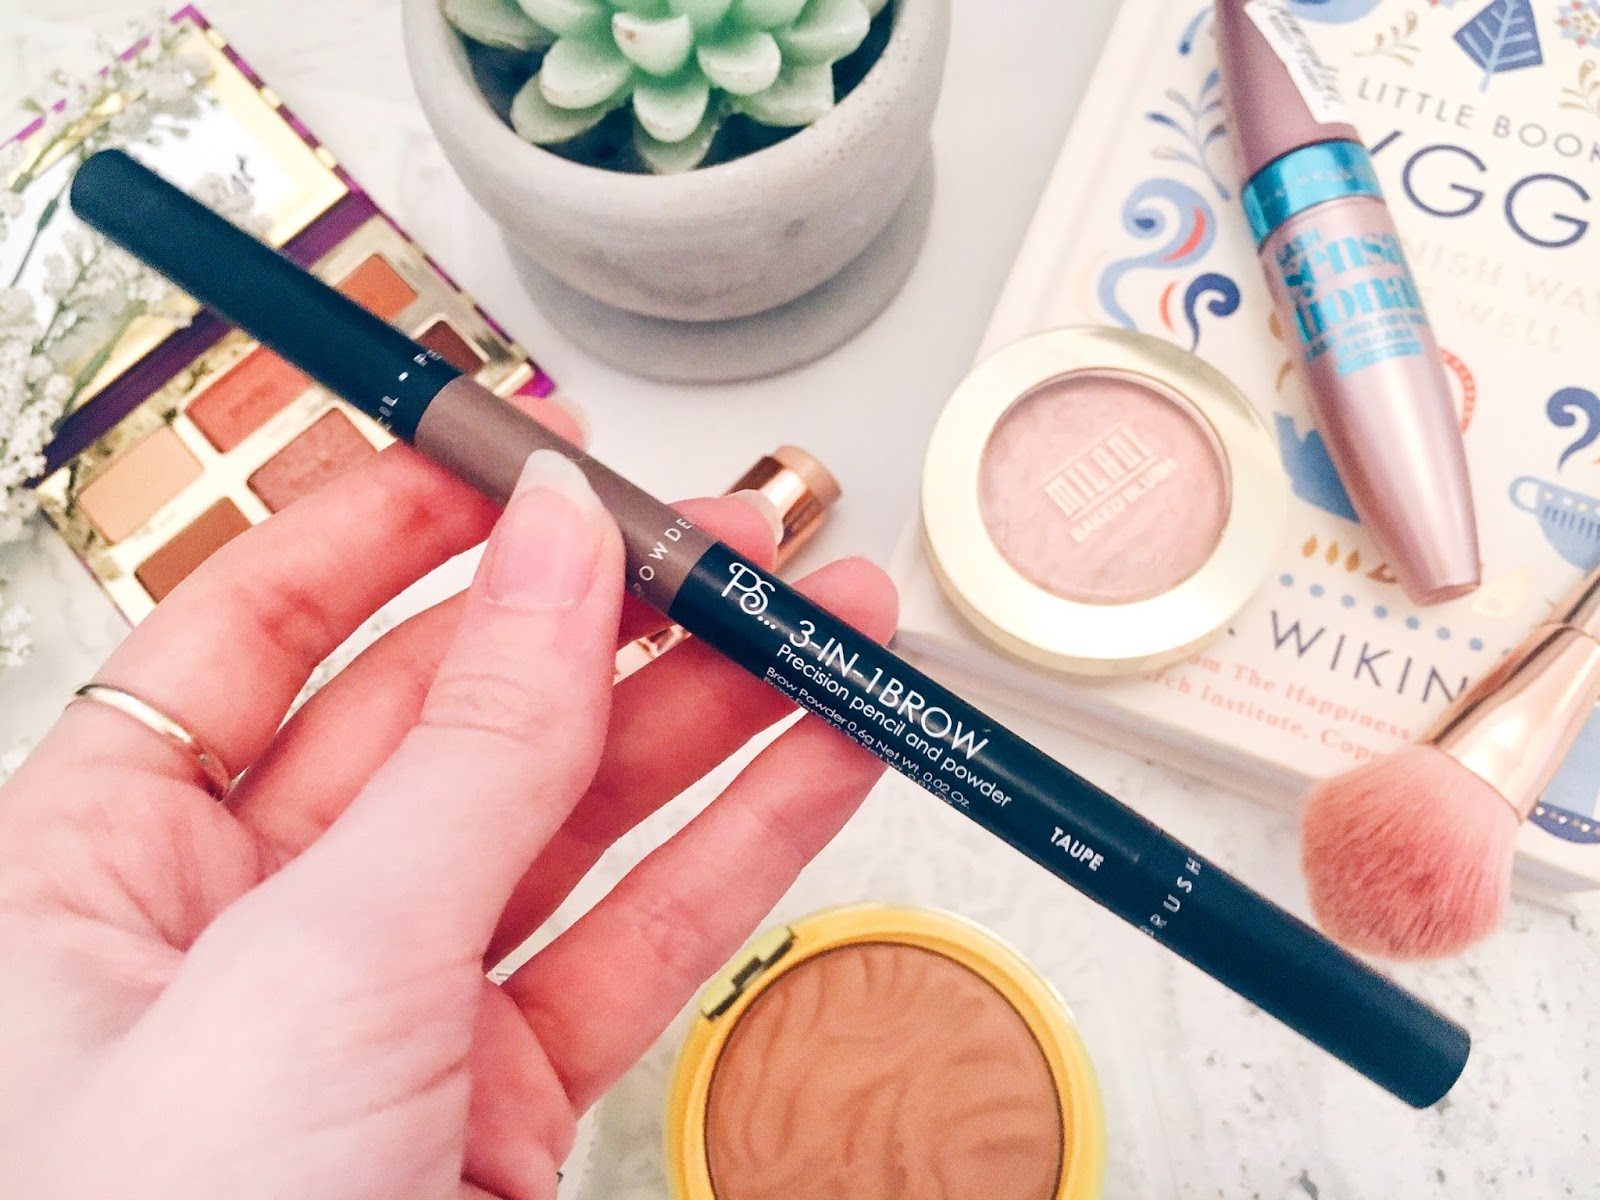 Primark 3 in 1 Brow Pencil